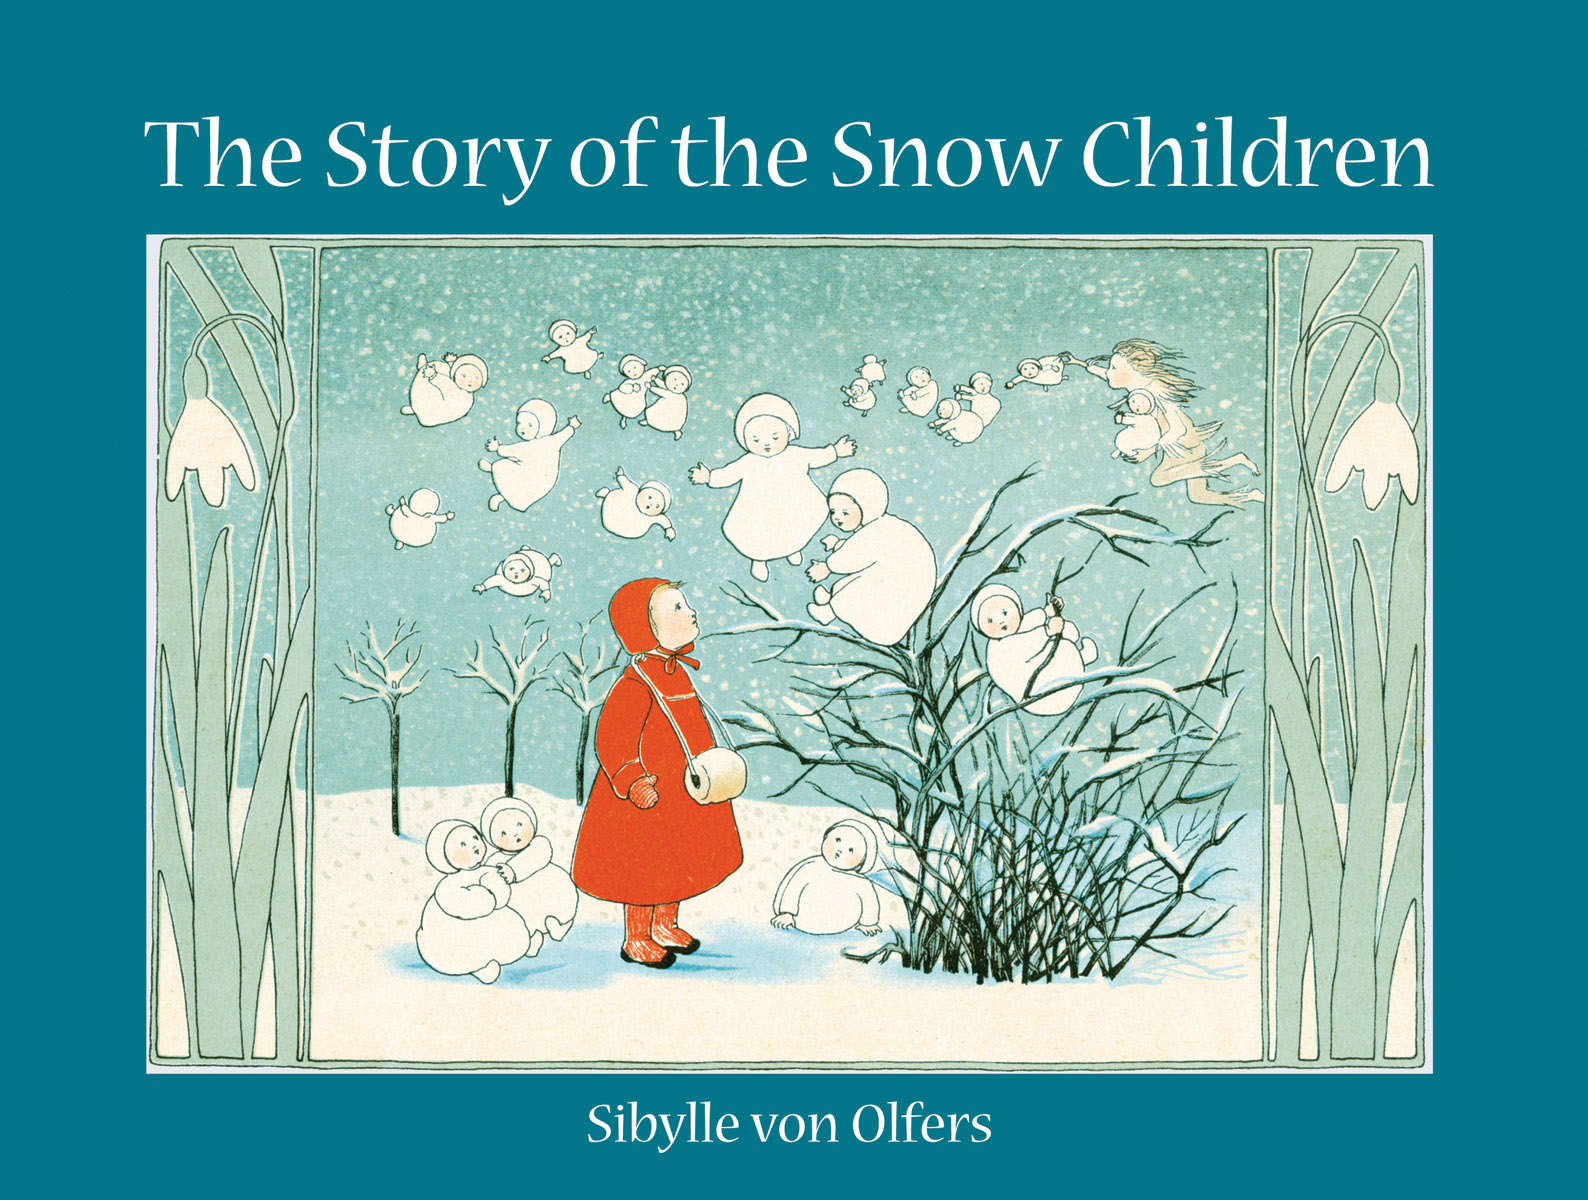 Sibylle von Olfers, The Story of the Snow Children cover image